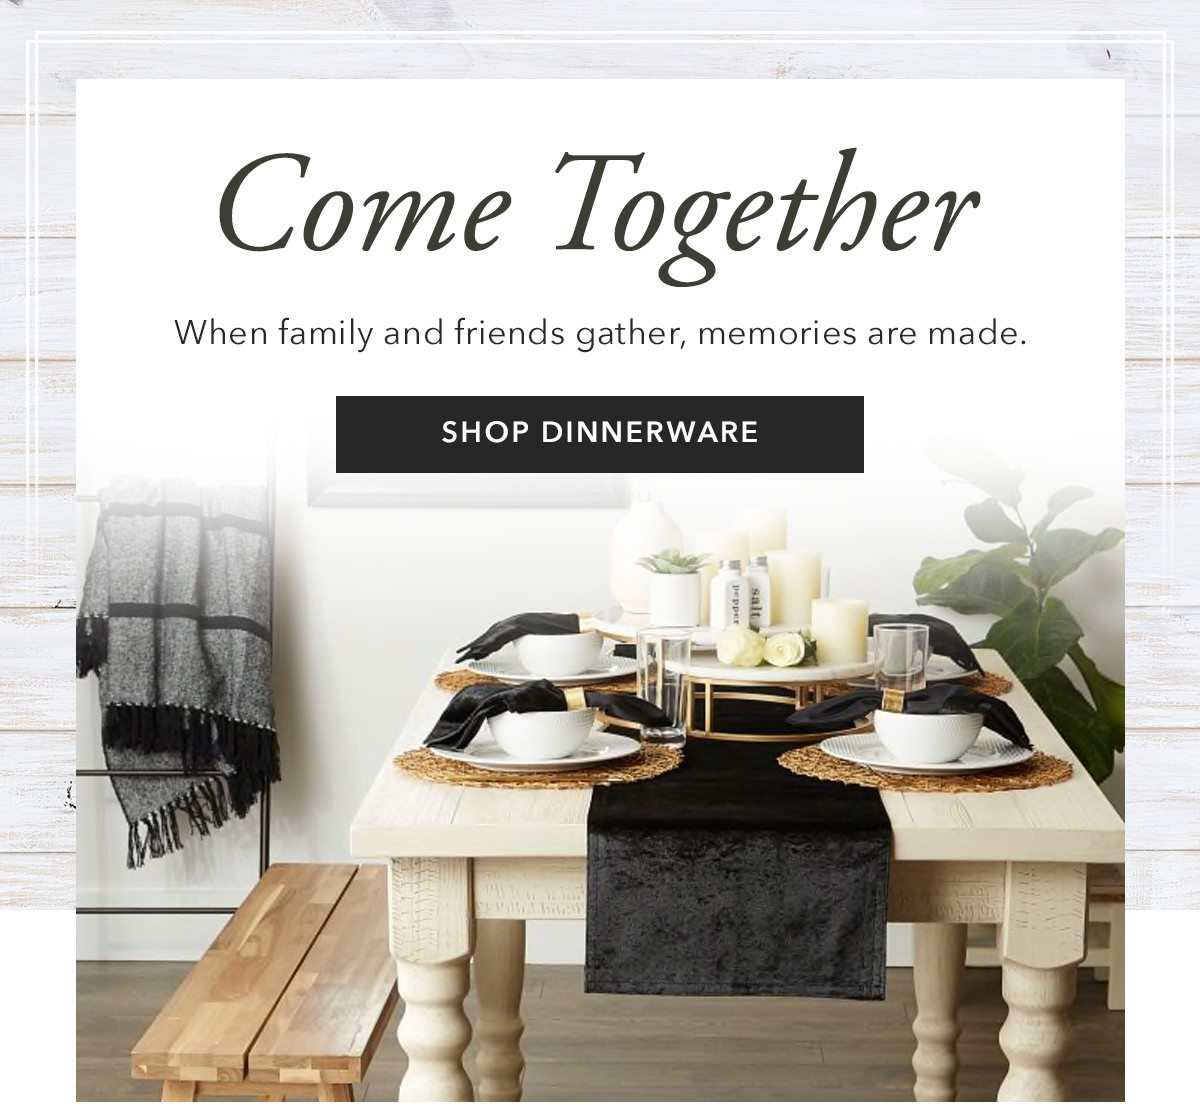 Come Together   SHOP DINNERWARE